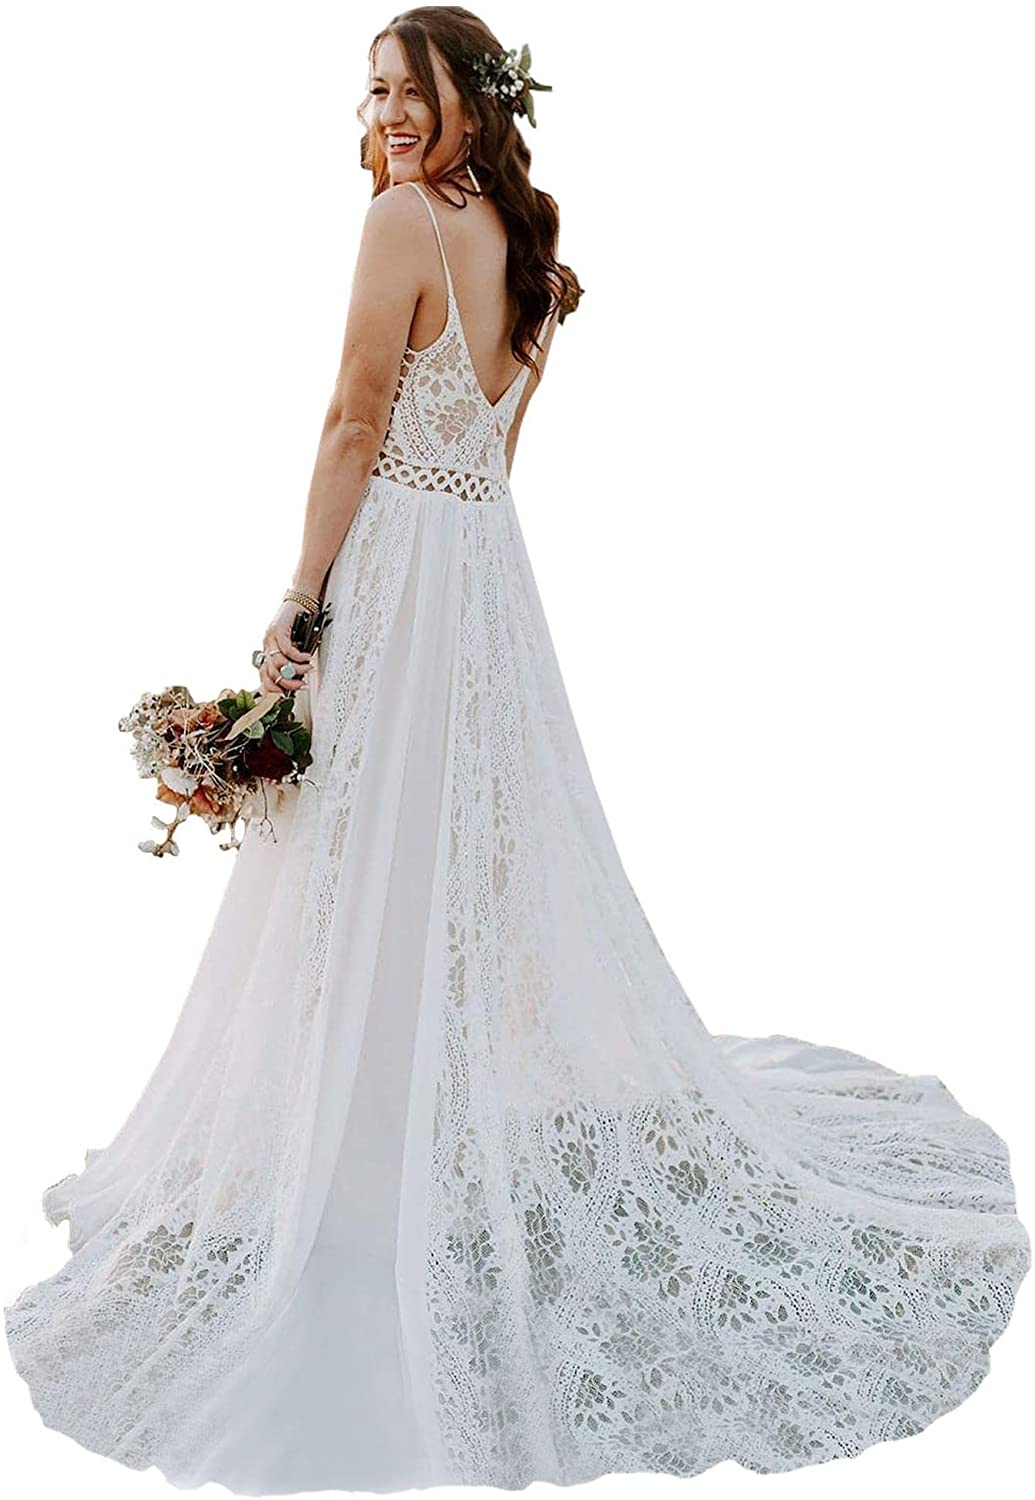 Bohemian Wedding Dresses Spaghetti Strap With Adjustable Drawstring Lace Bridal Gowns At Amazon Women S Clothing Store